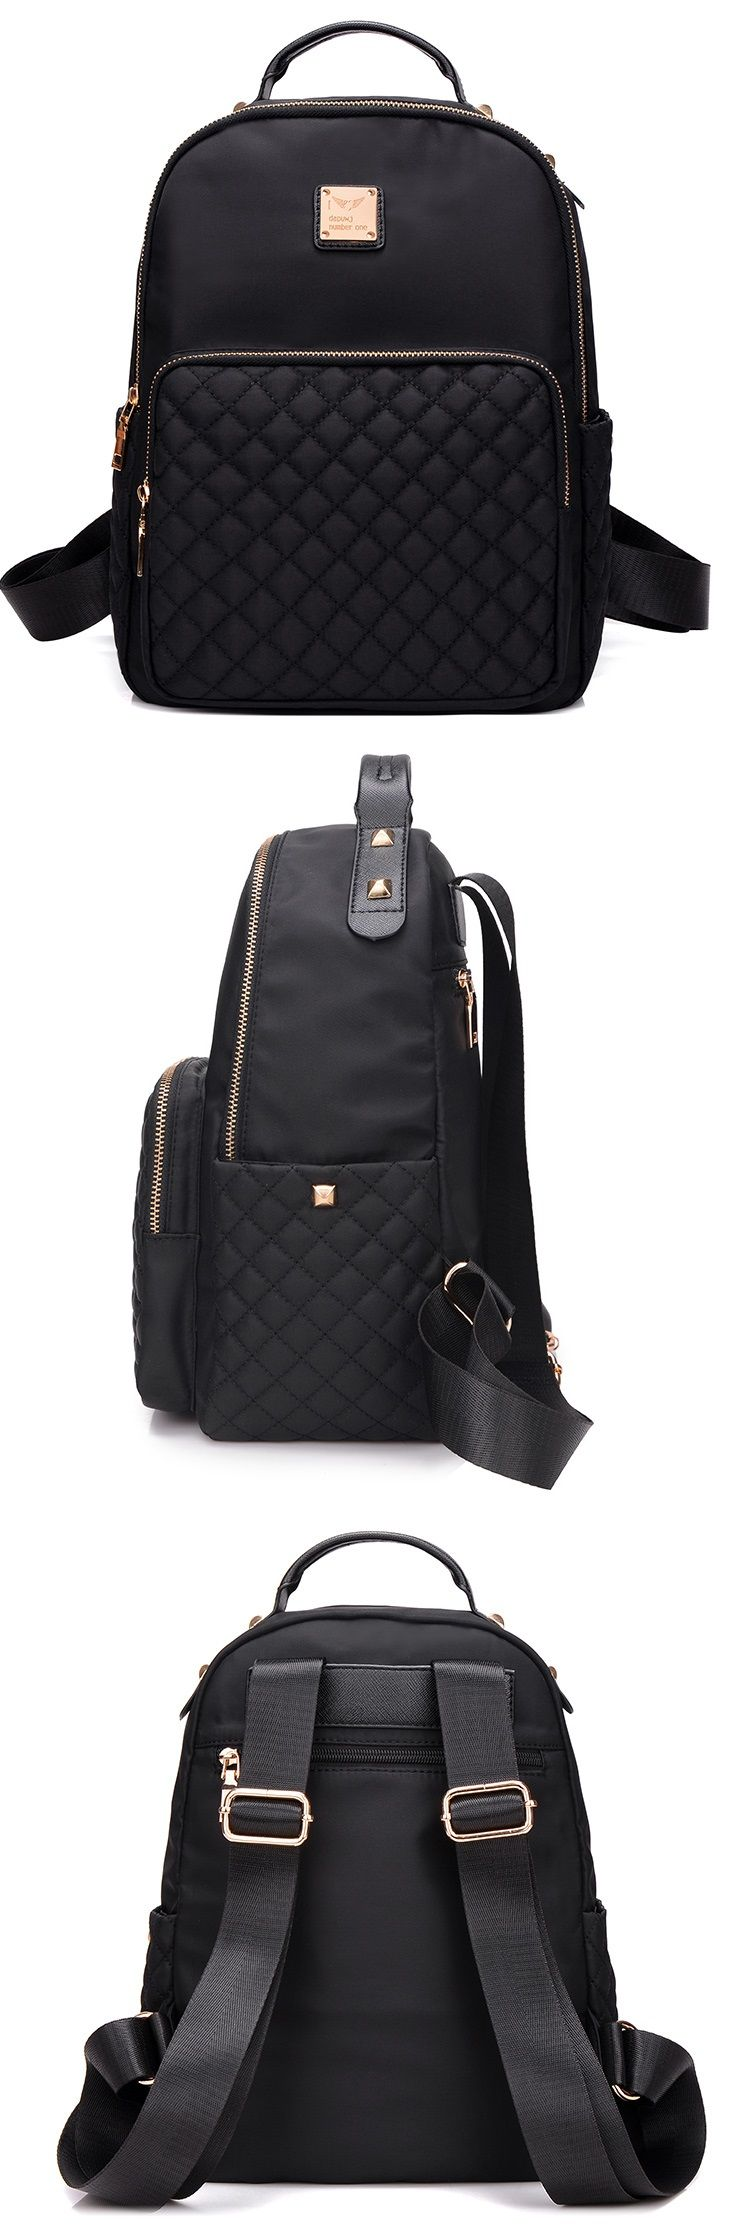 Are you going on a small road trip soon? Then this backpack is a must-have! Click to get yours for $25.19 <3